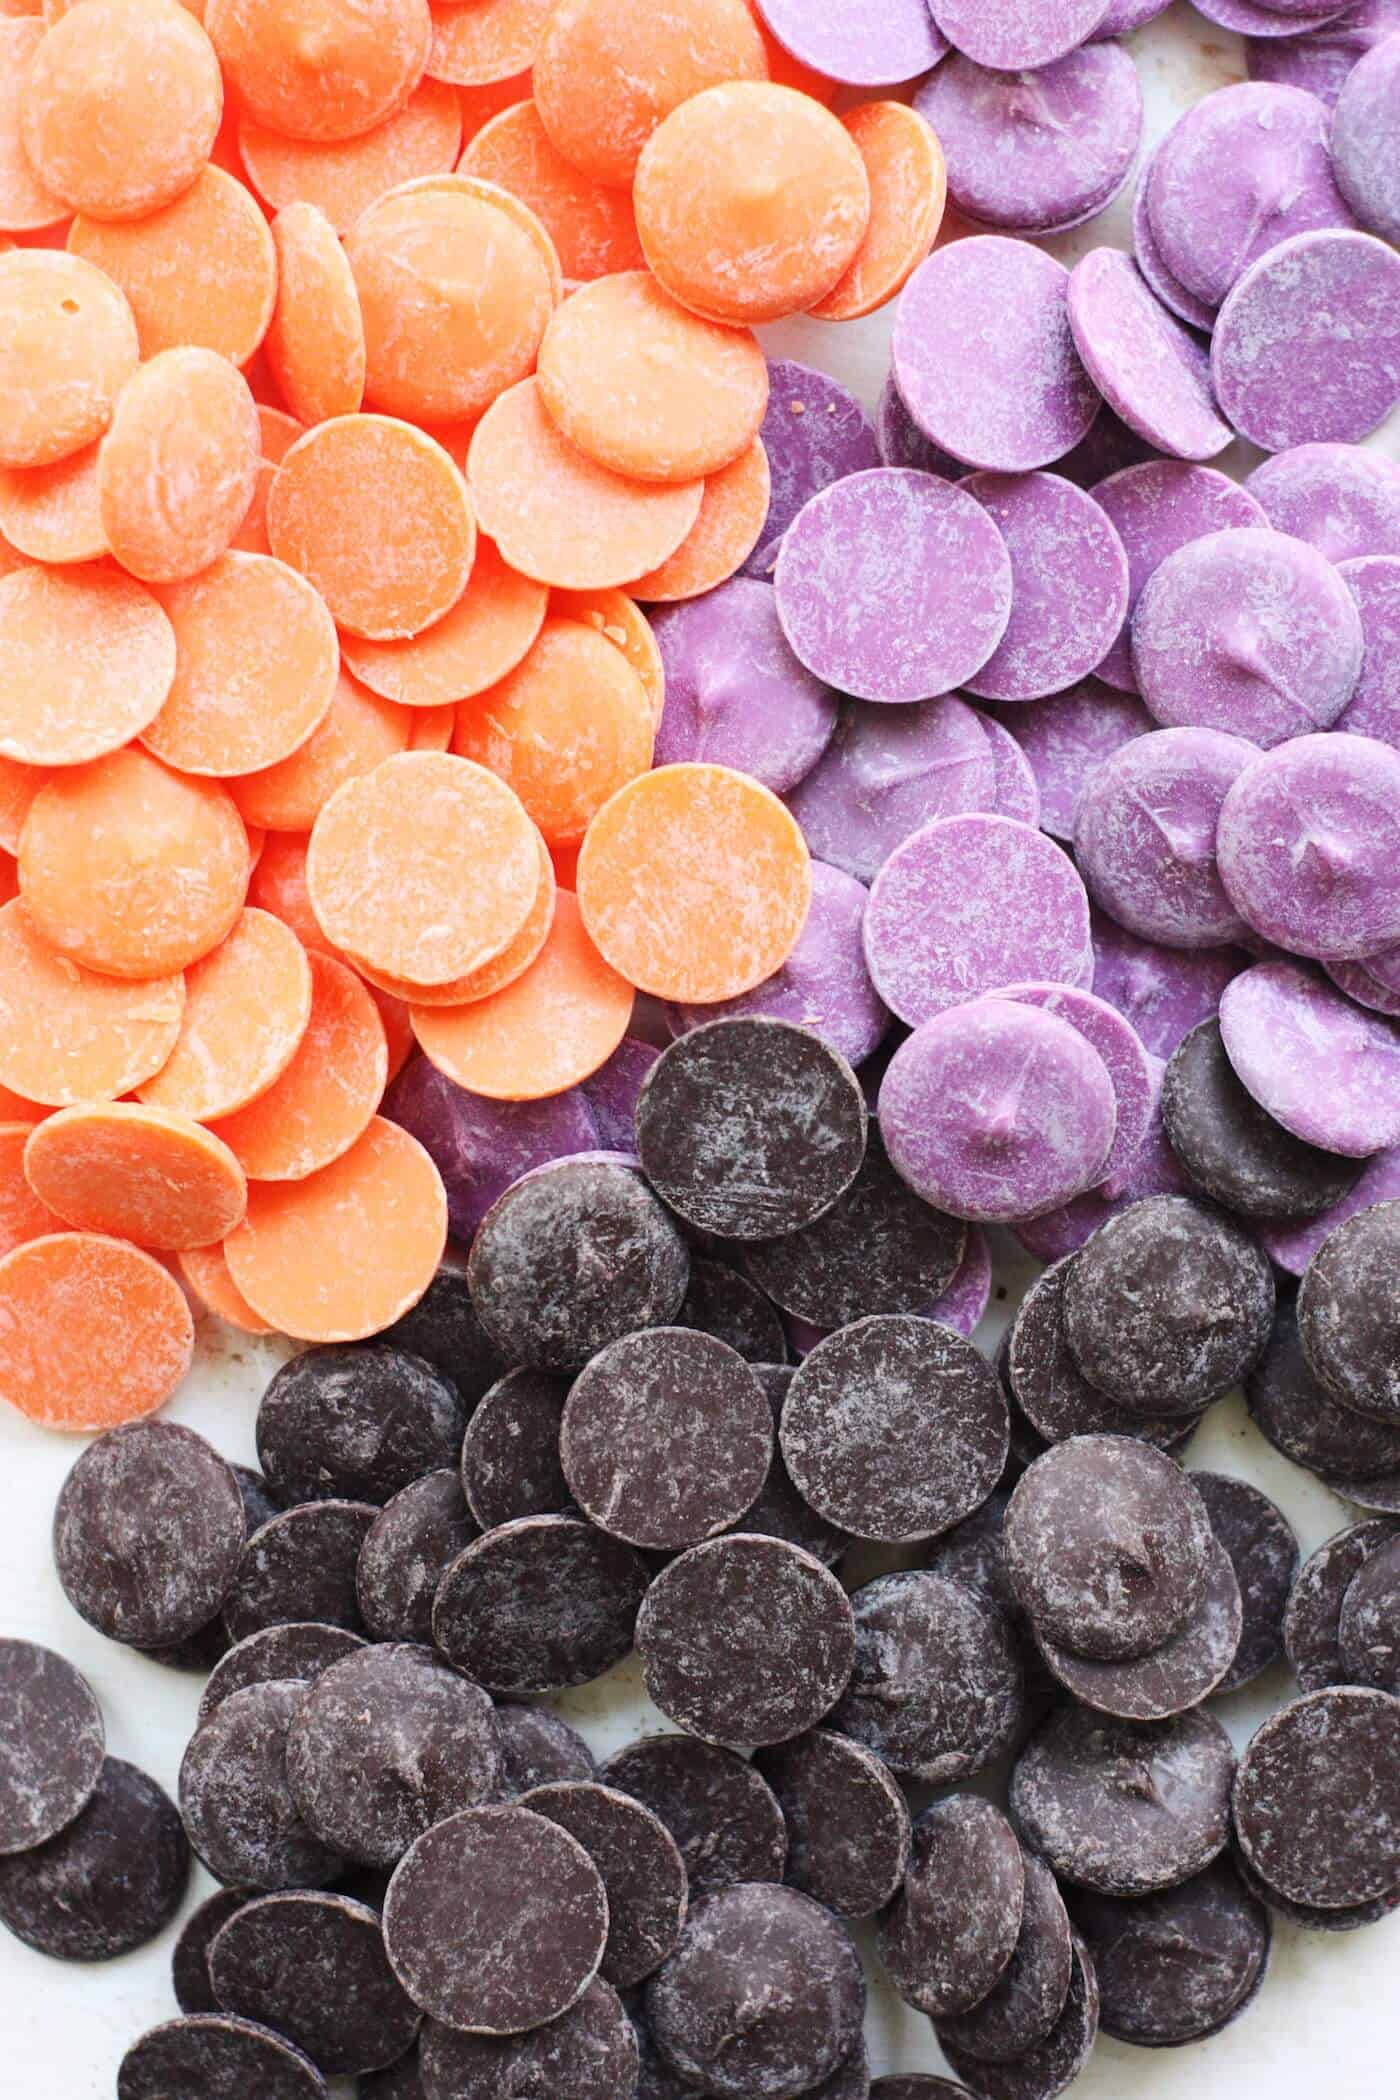 Wilton candy melts in orange, purple, and black for Halloween